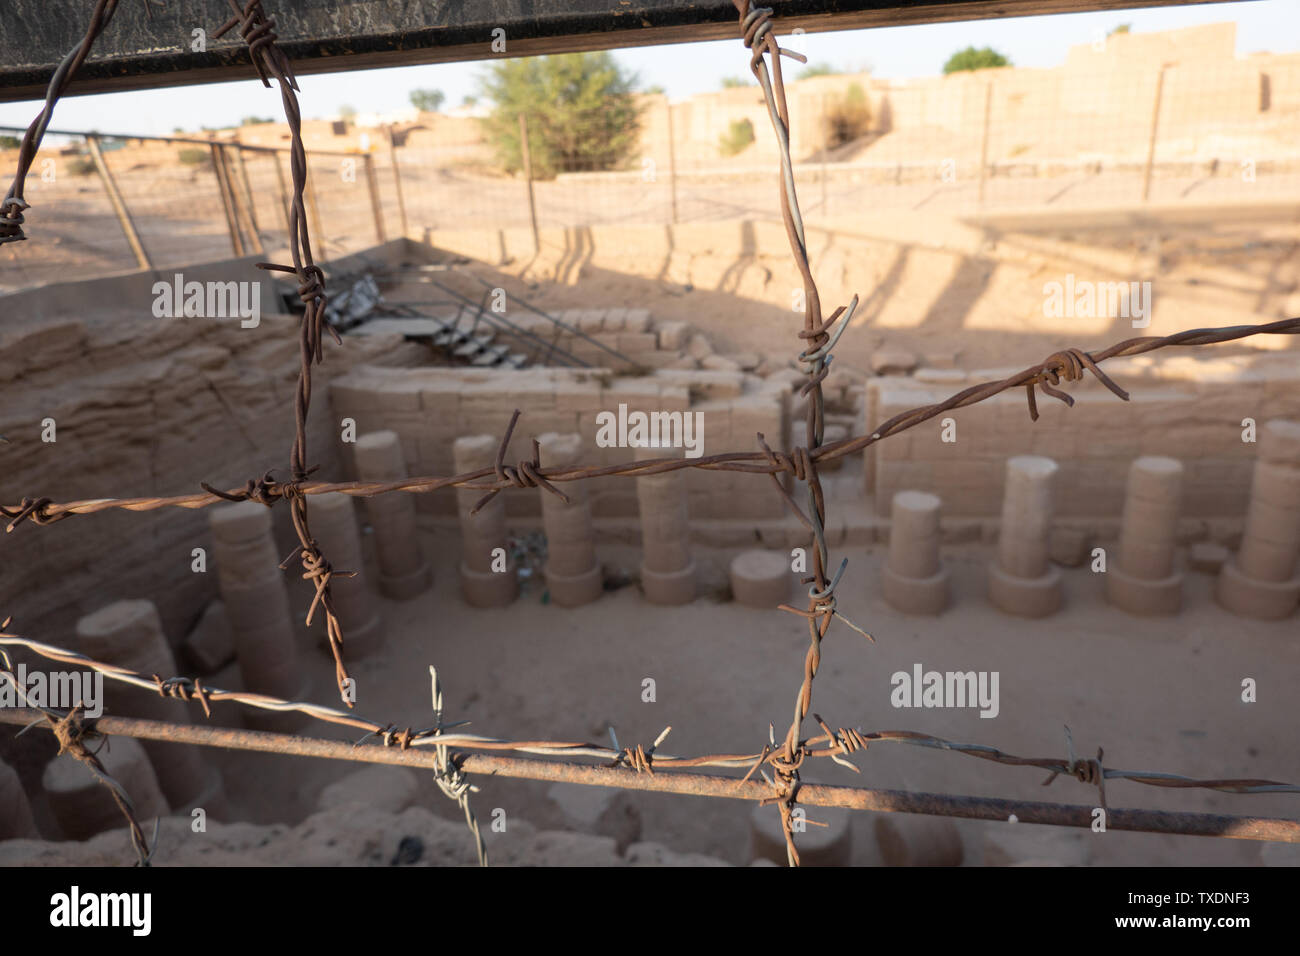 Unclearly depicted columns of an excavated temple near Kerma in Sudan behind sharply focused barbed wire - Stock Image